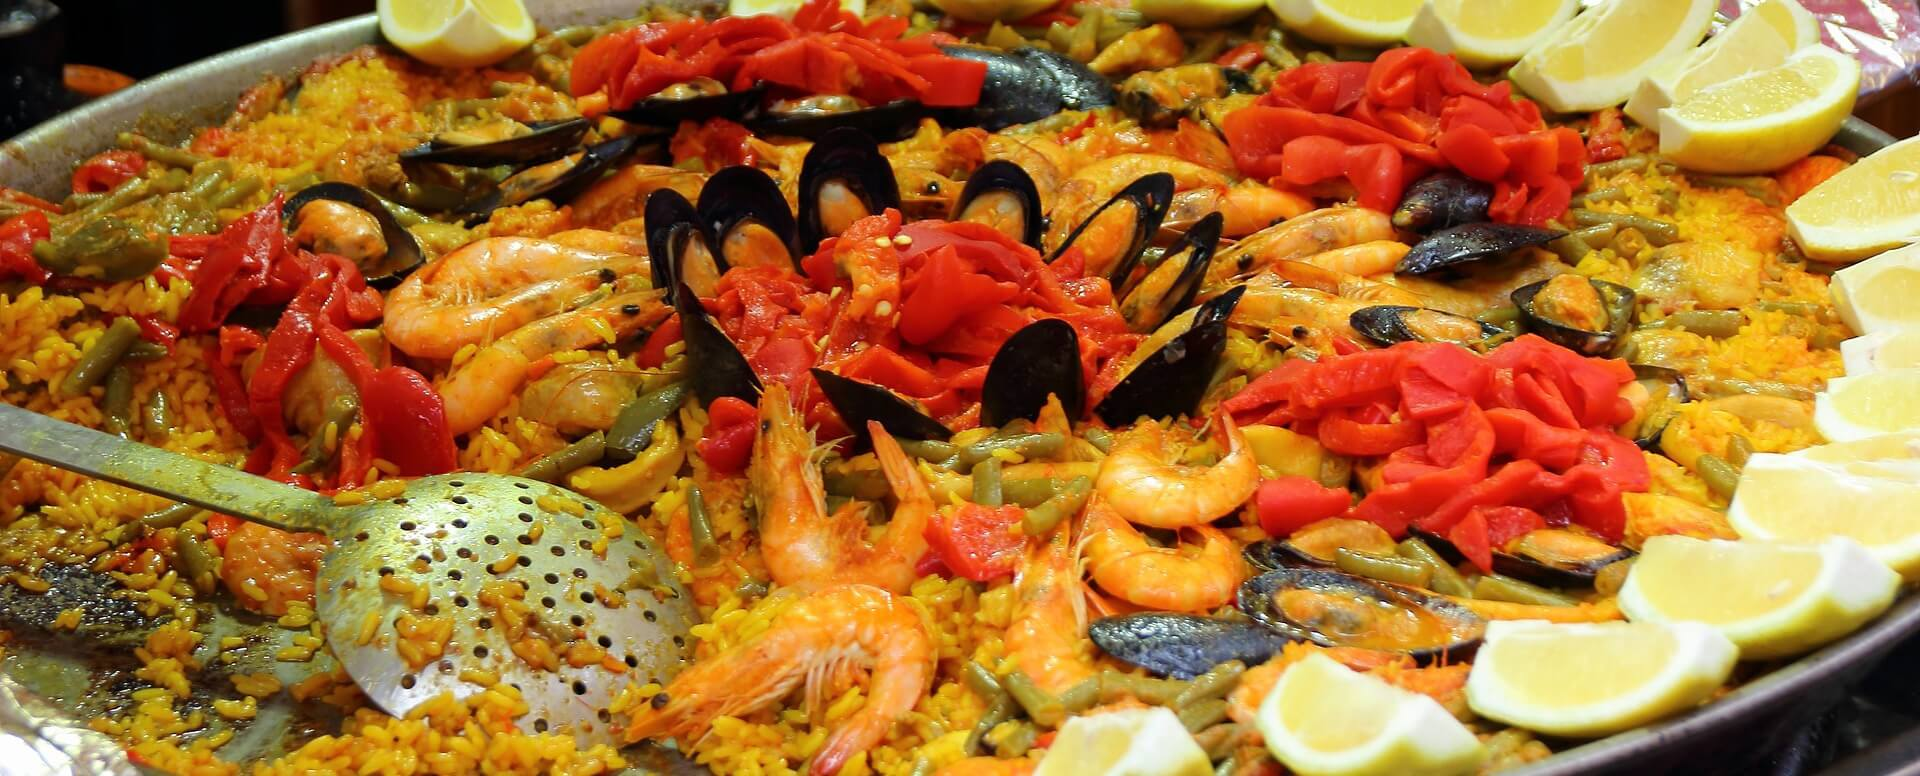 Internationally renowned dishes - Spain